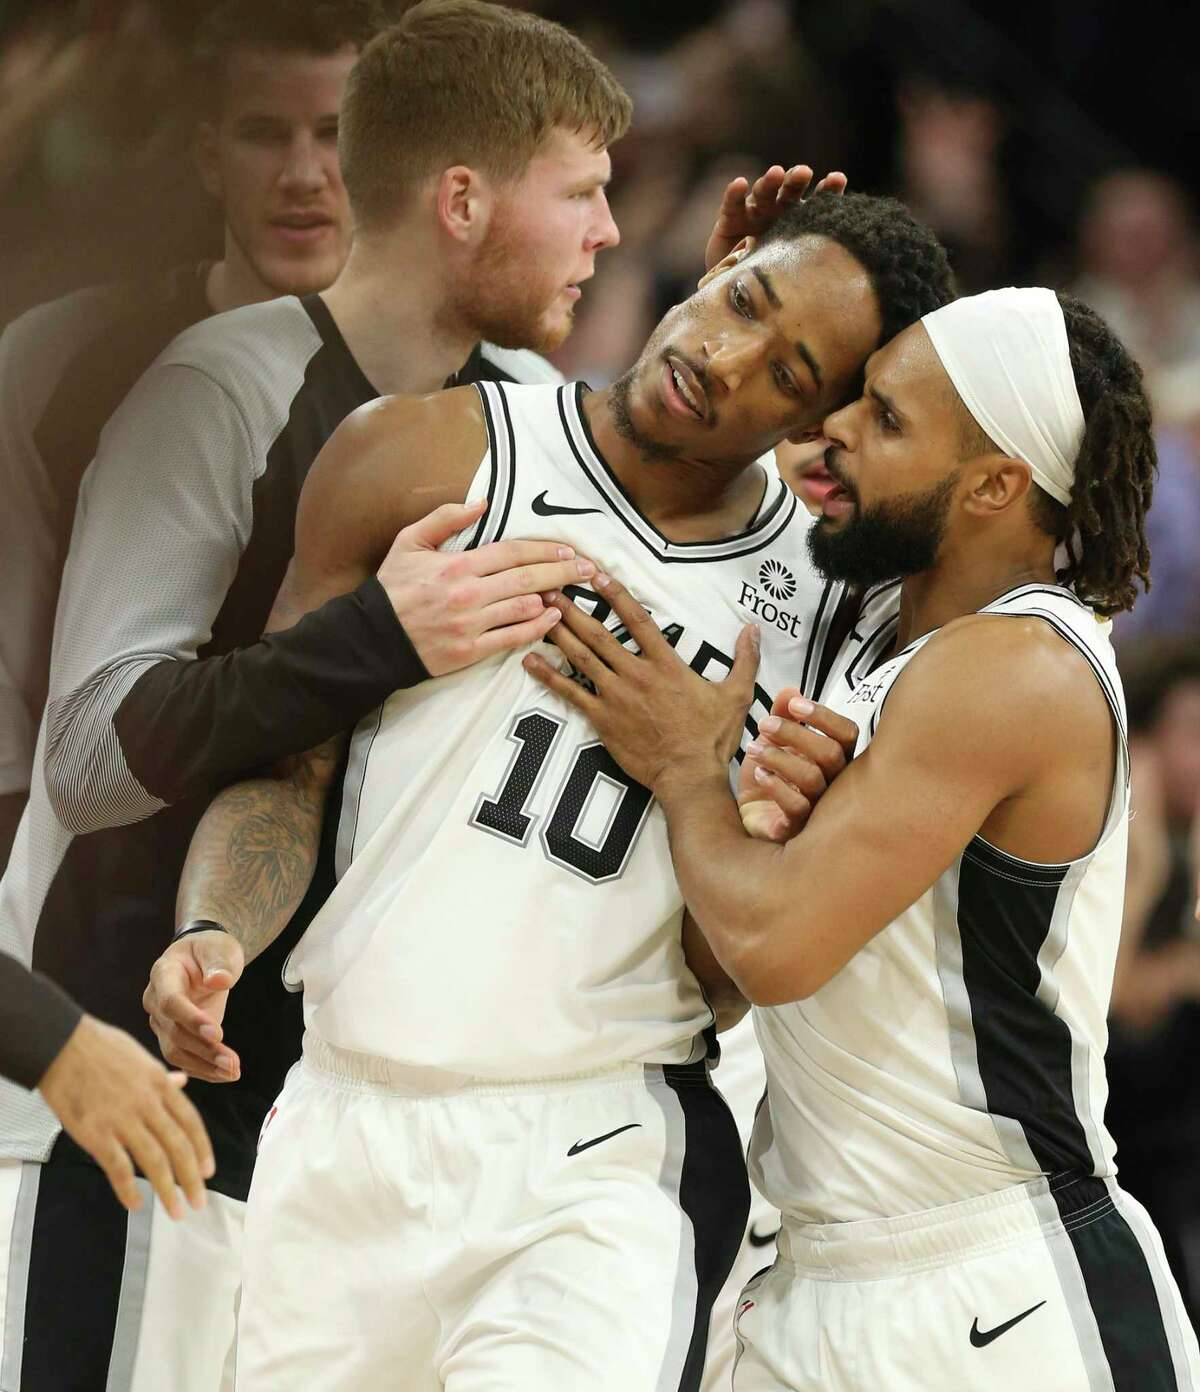 DeMar DeRozan (10) is headed to the Bulls in a sign-and-trade deal, and Patty Mills will join the Nets as a free agent.